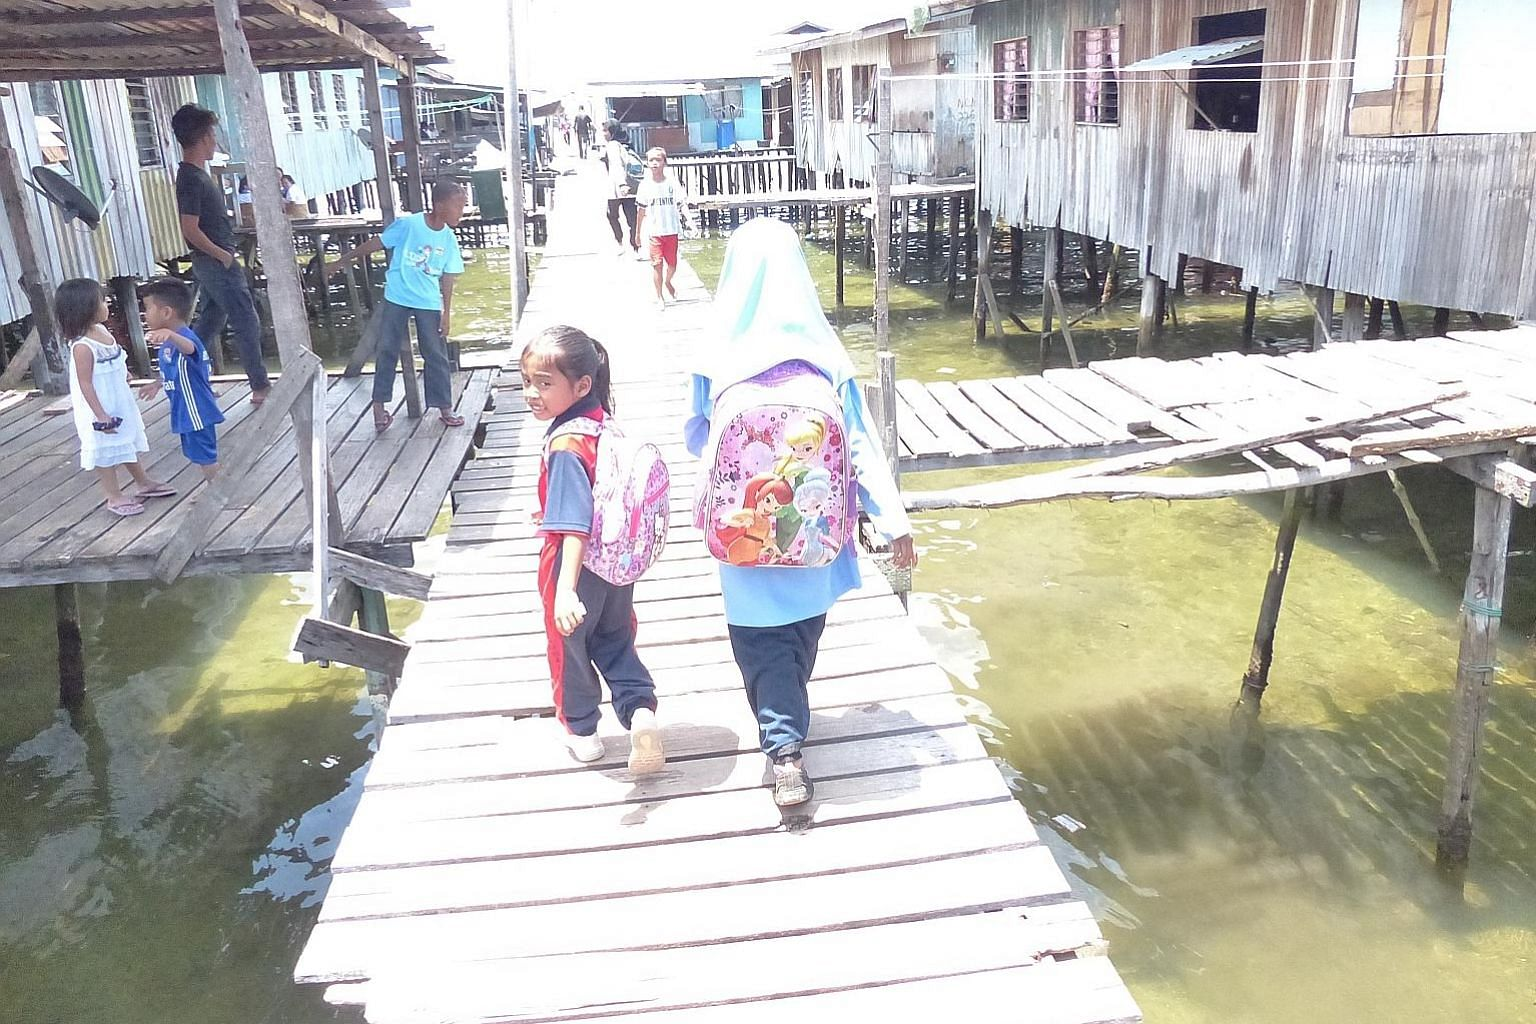 Parti Warisan Sabah leader Shafie Apdal (left) must contend with Umno's Tan Sri Musa Aman, Sabah's Chief Minister, who is credited for his effective management of the state's economy. Kampung Pasir Putih, the enclave of stilt houses on an island just